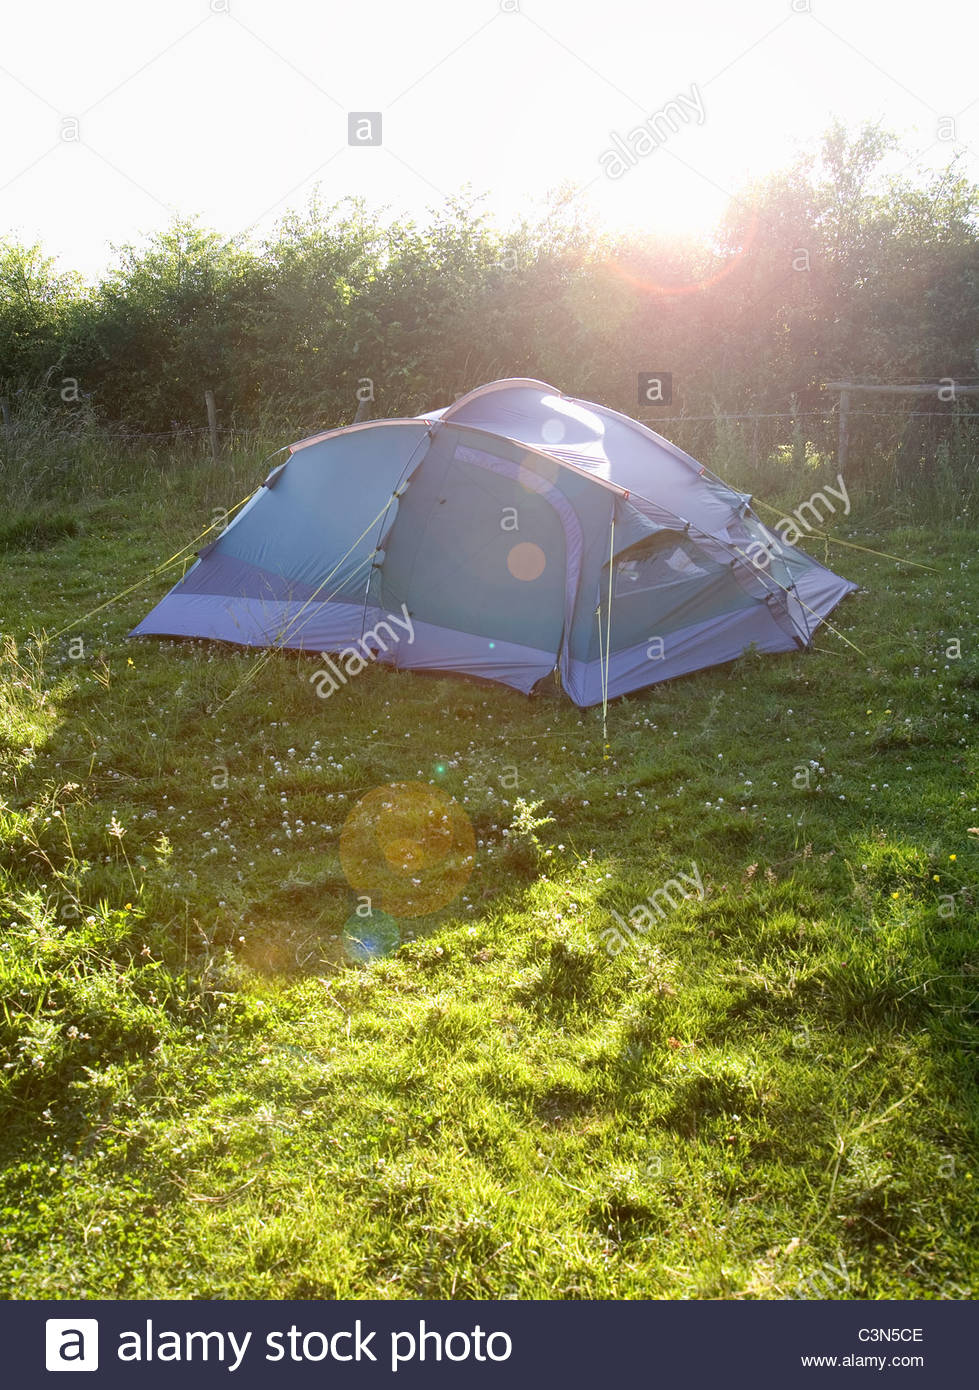 Small tent pitched in field - Stock Image